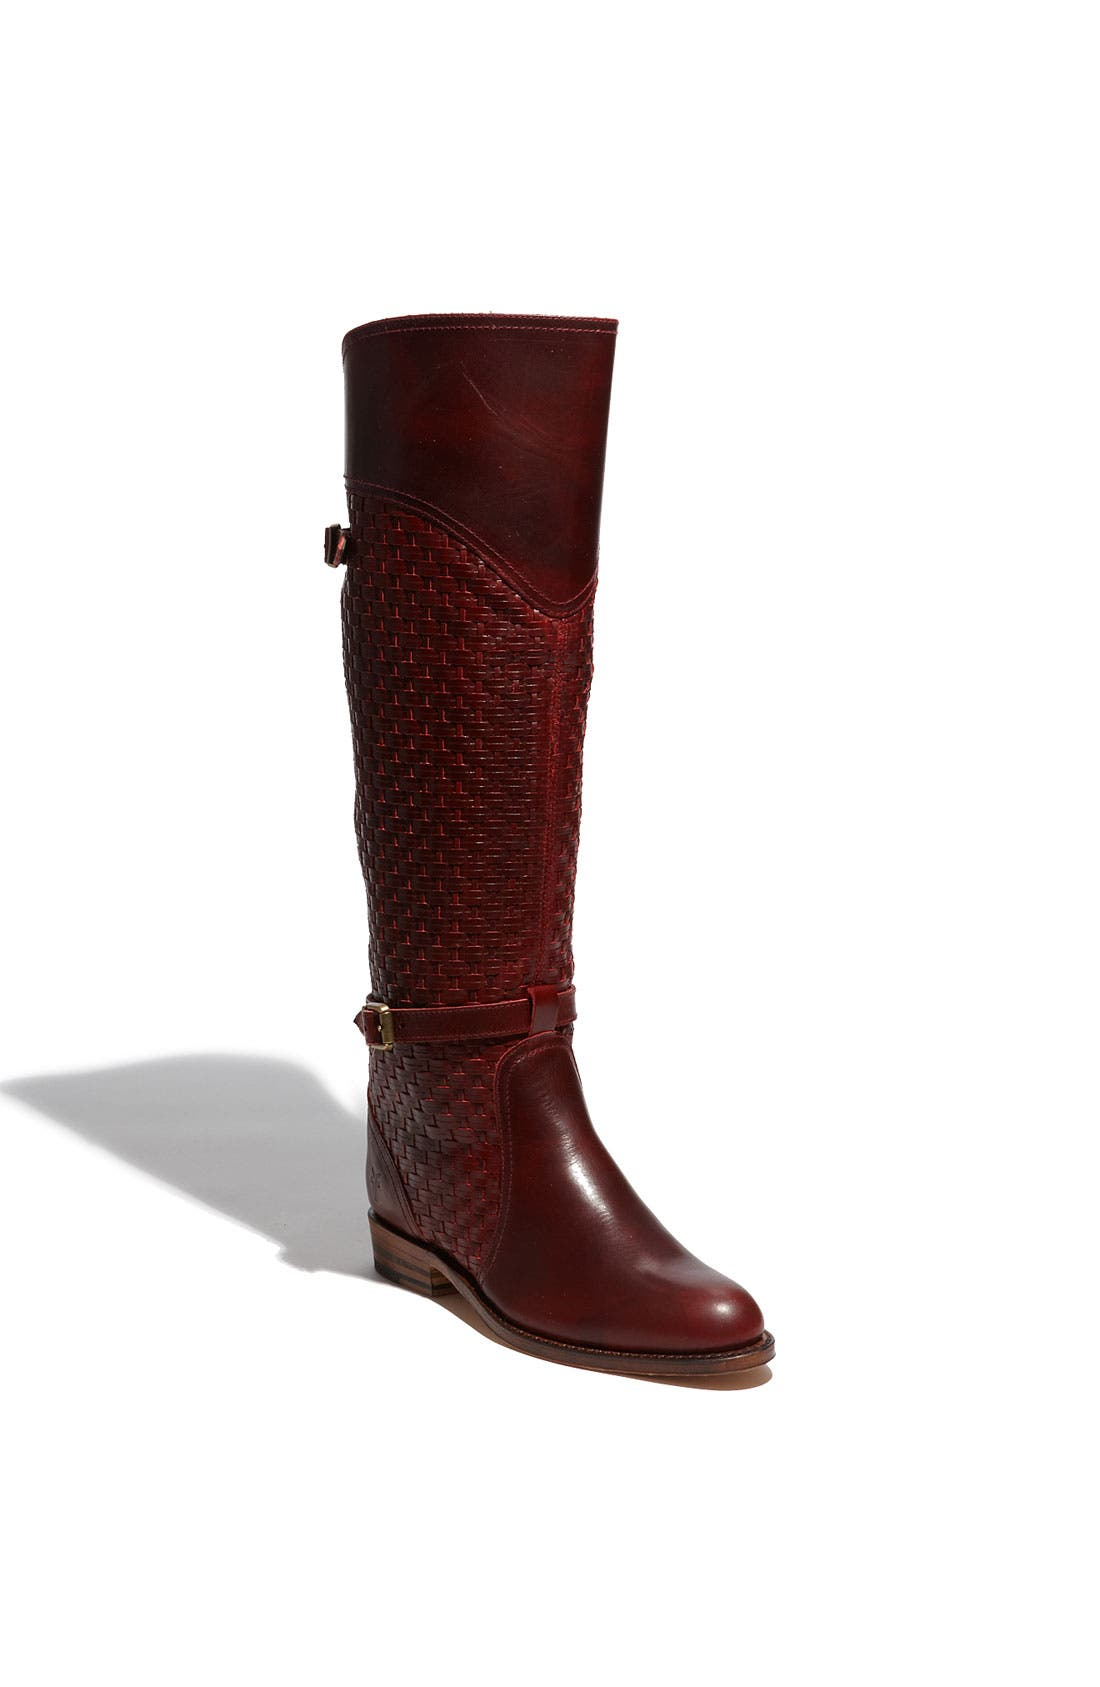 Alternate Image 1 Selected - Frye 'Dorado' Riding Boot